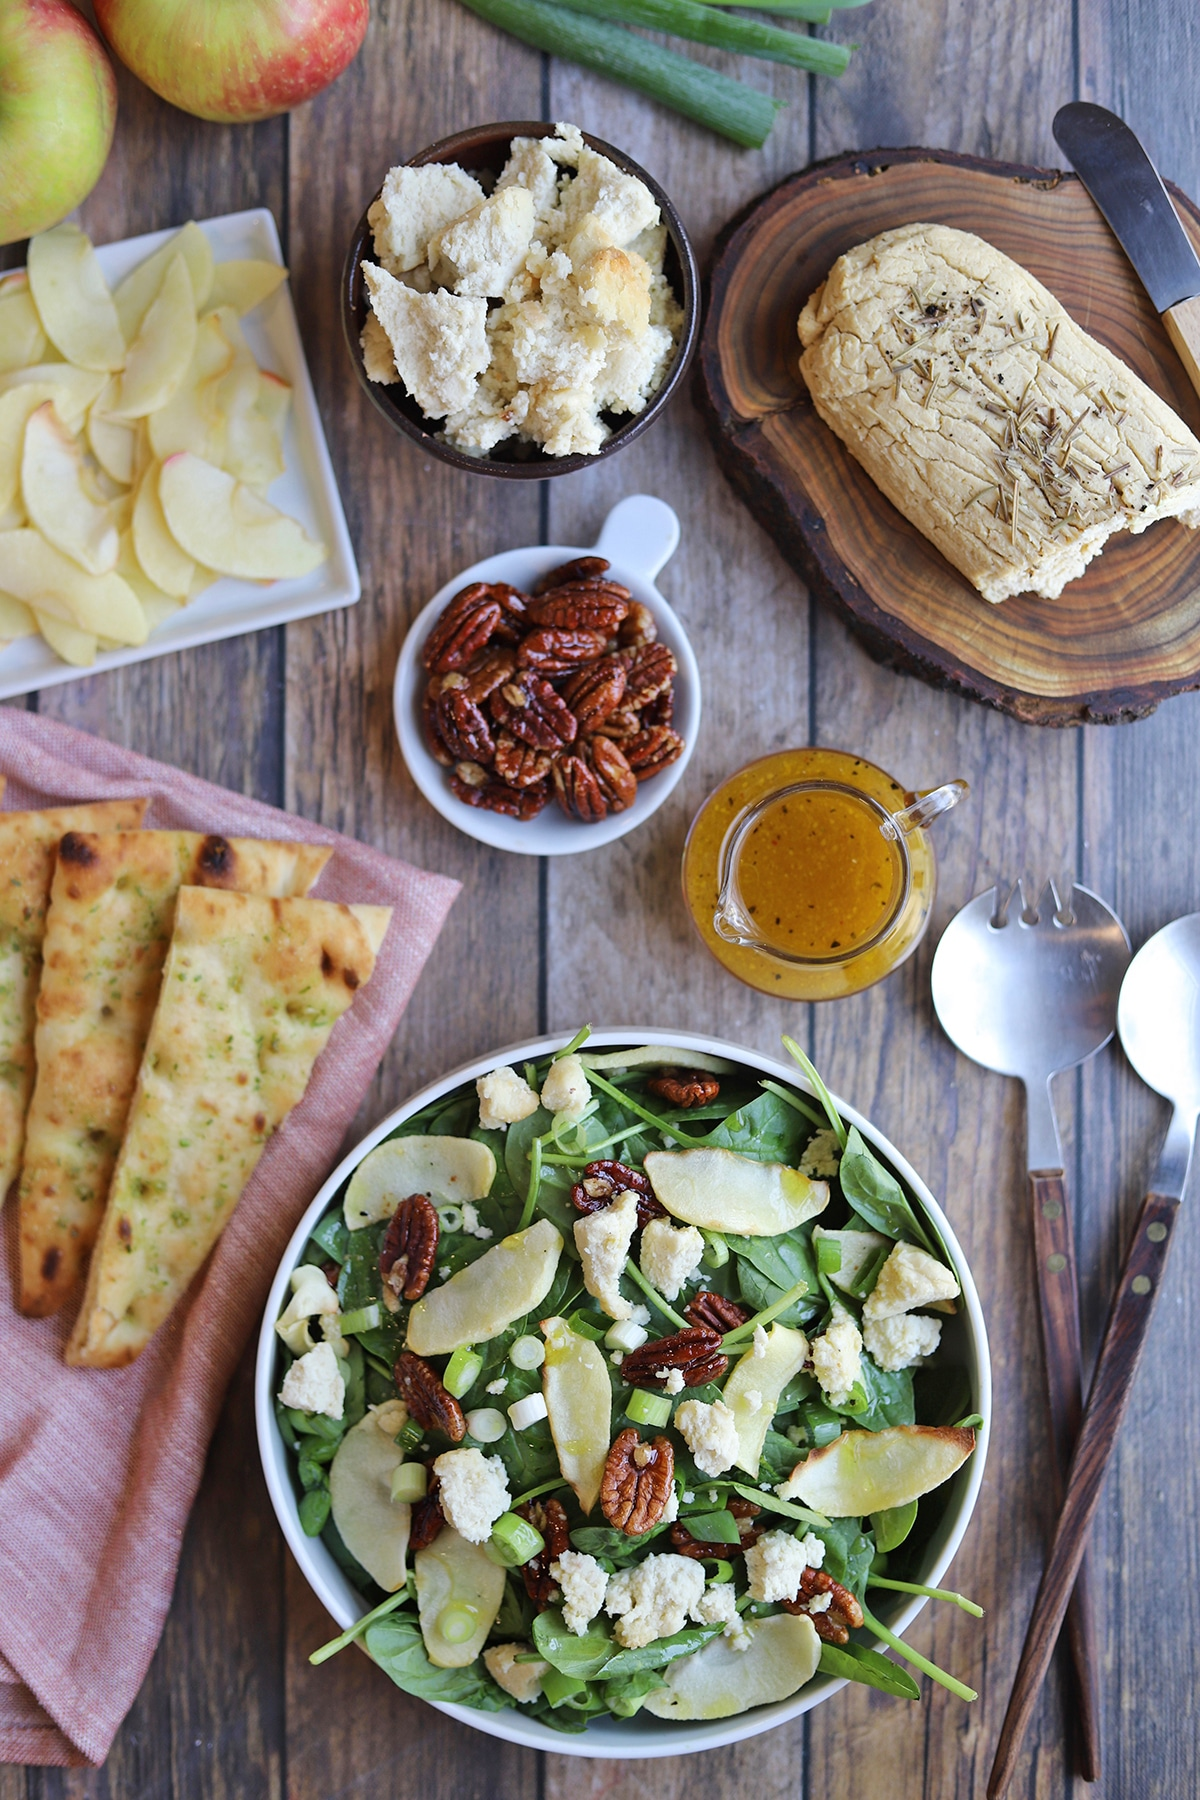 Overhead table with salad, toasted bread, candied pecans, and baked apple slices.